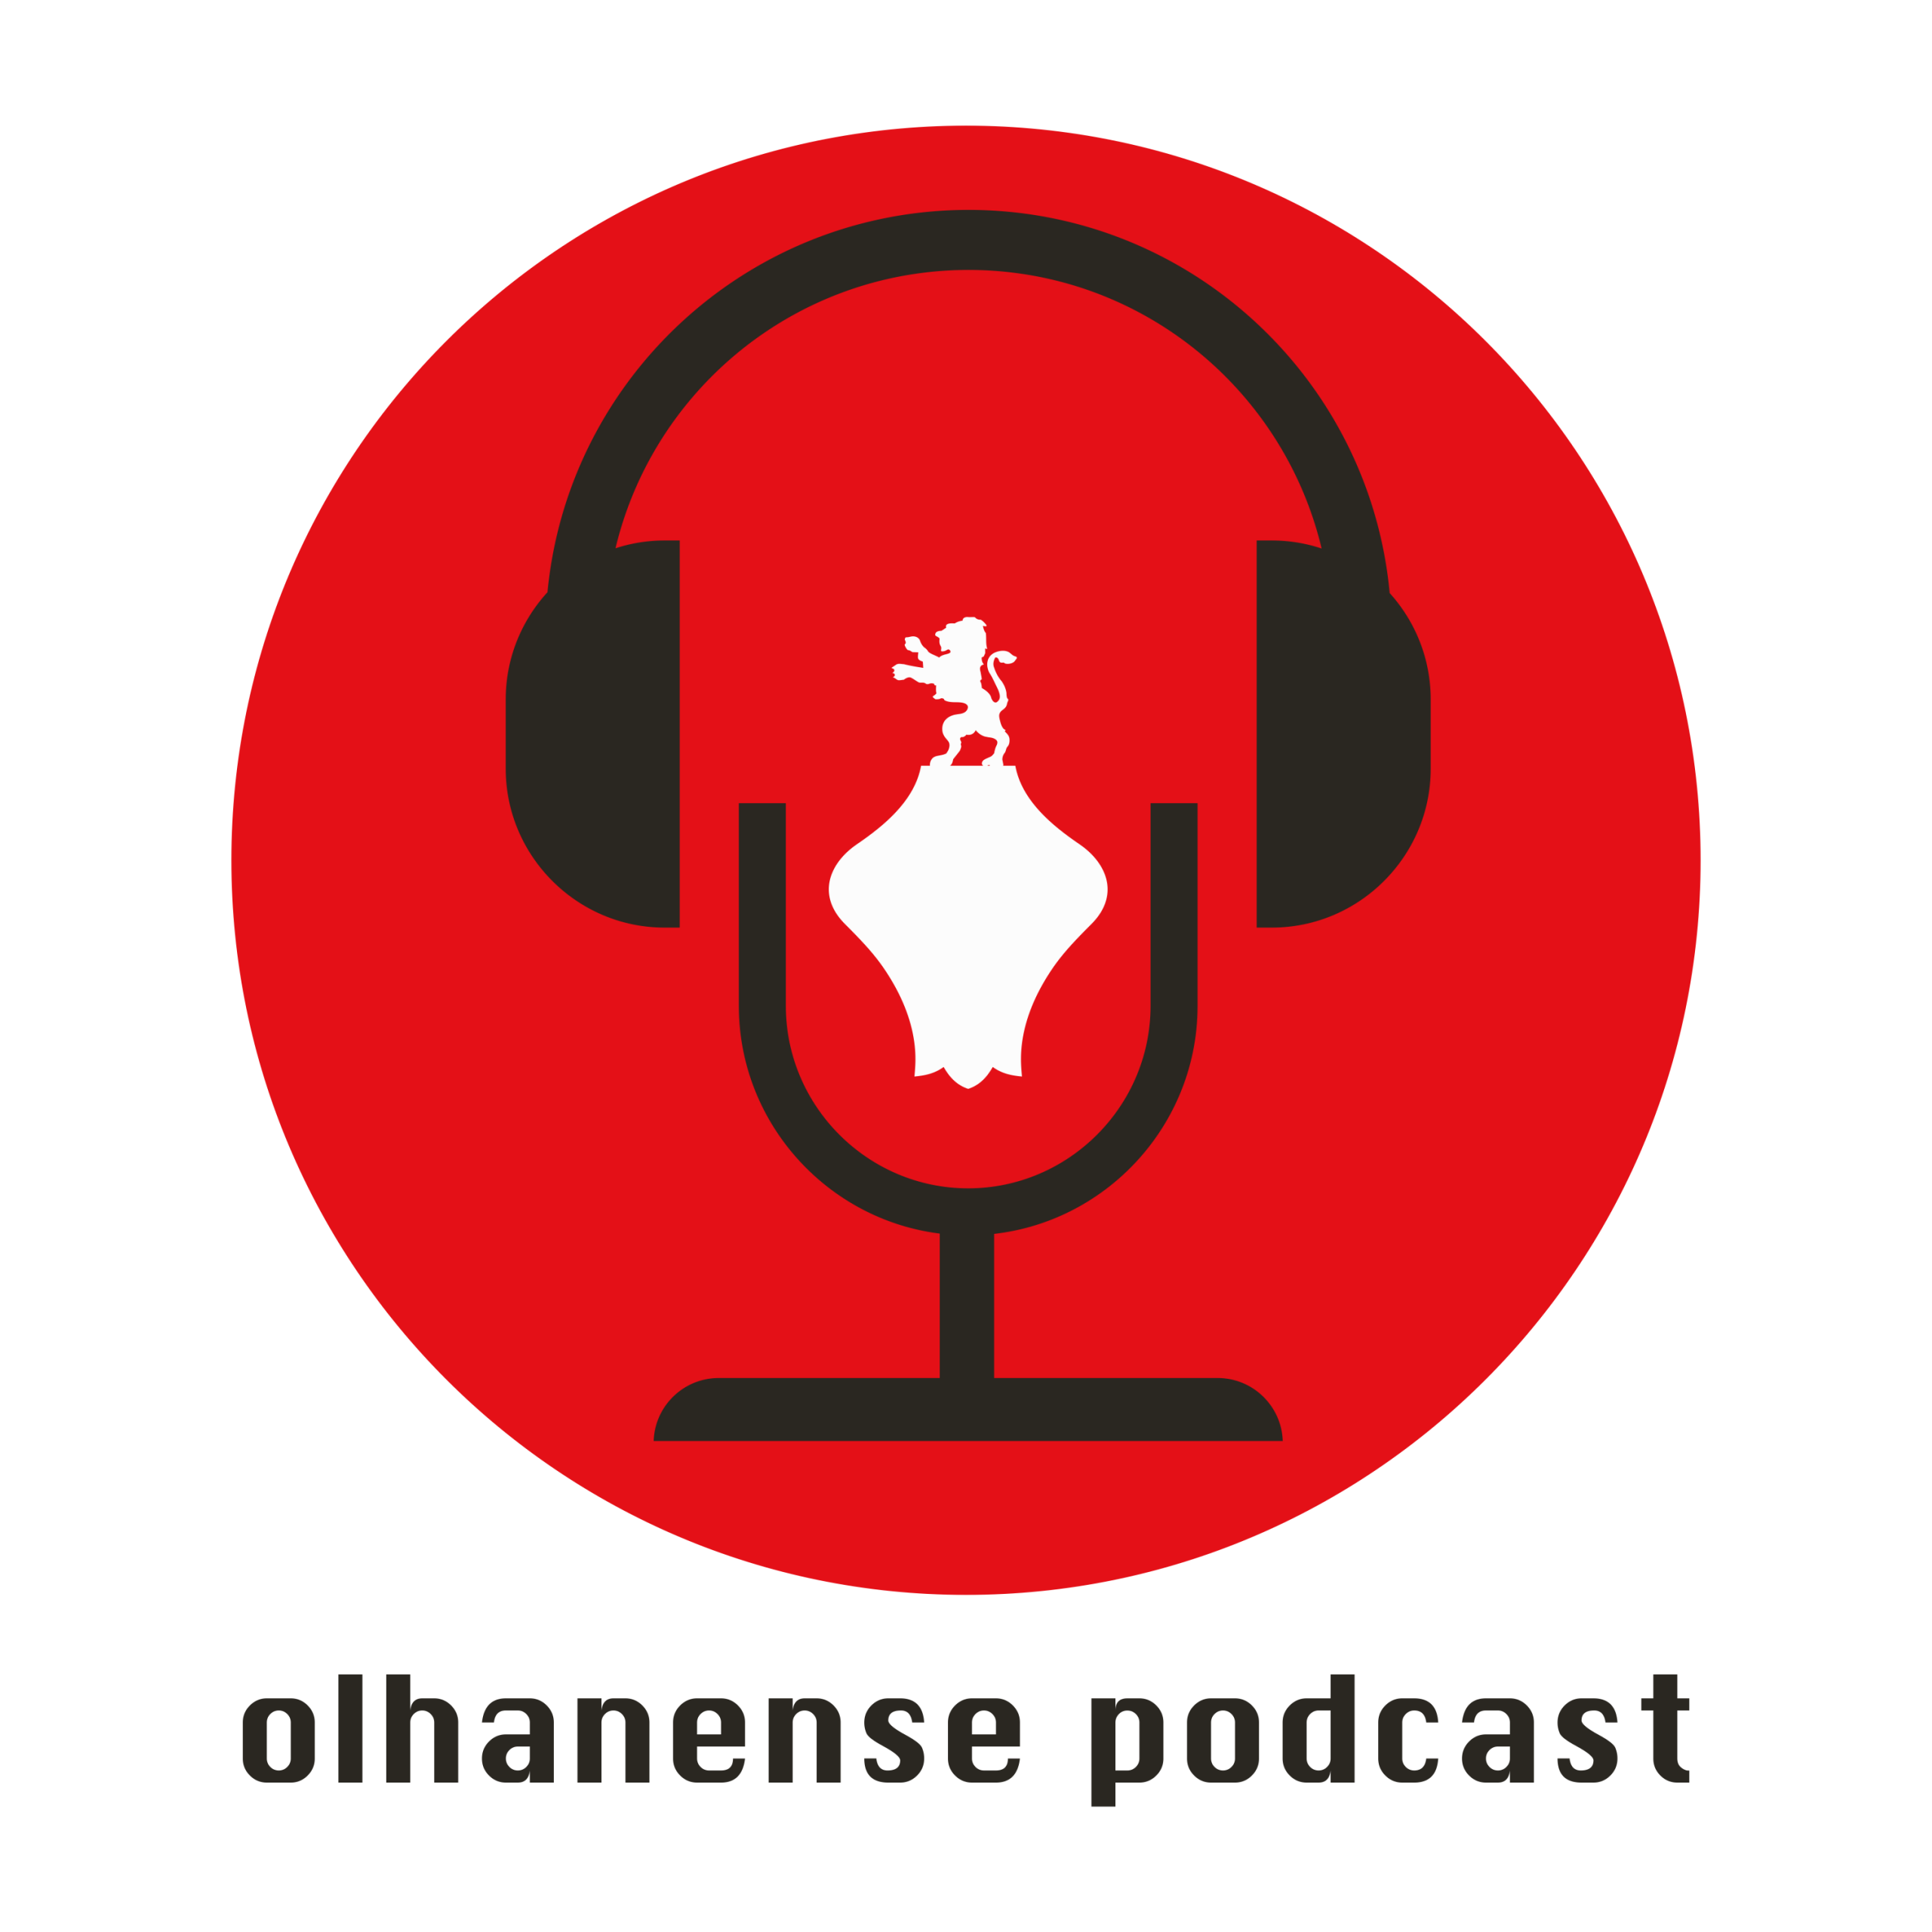 Olhanense Podcast